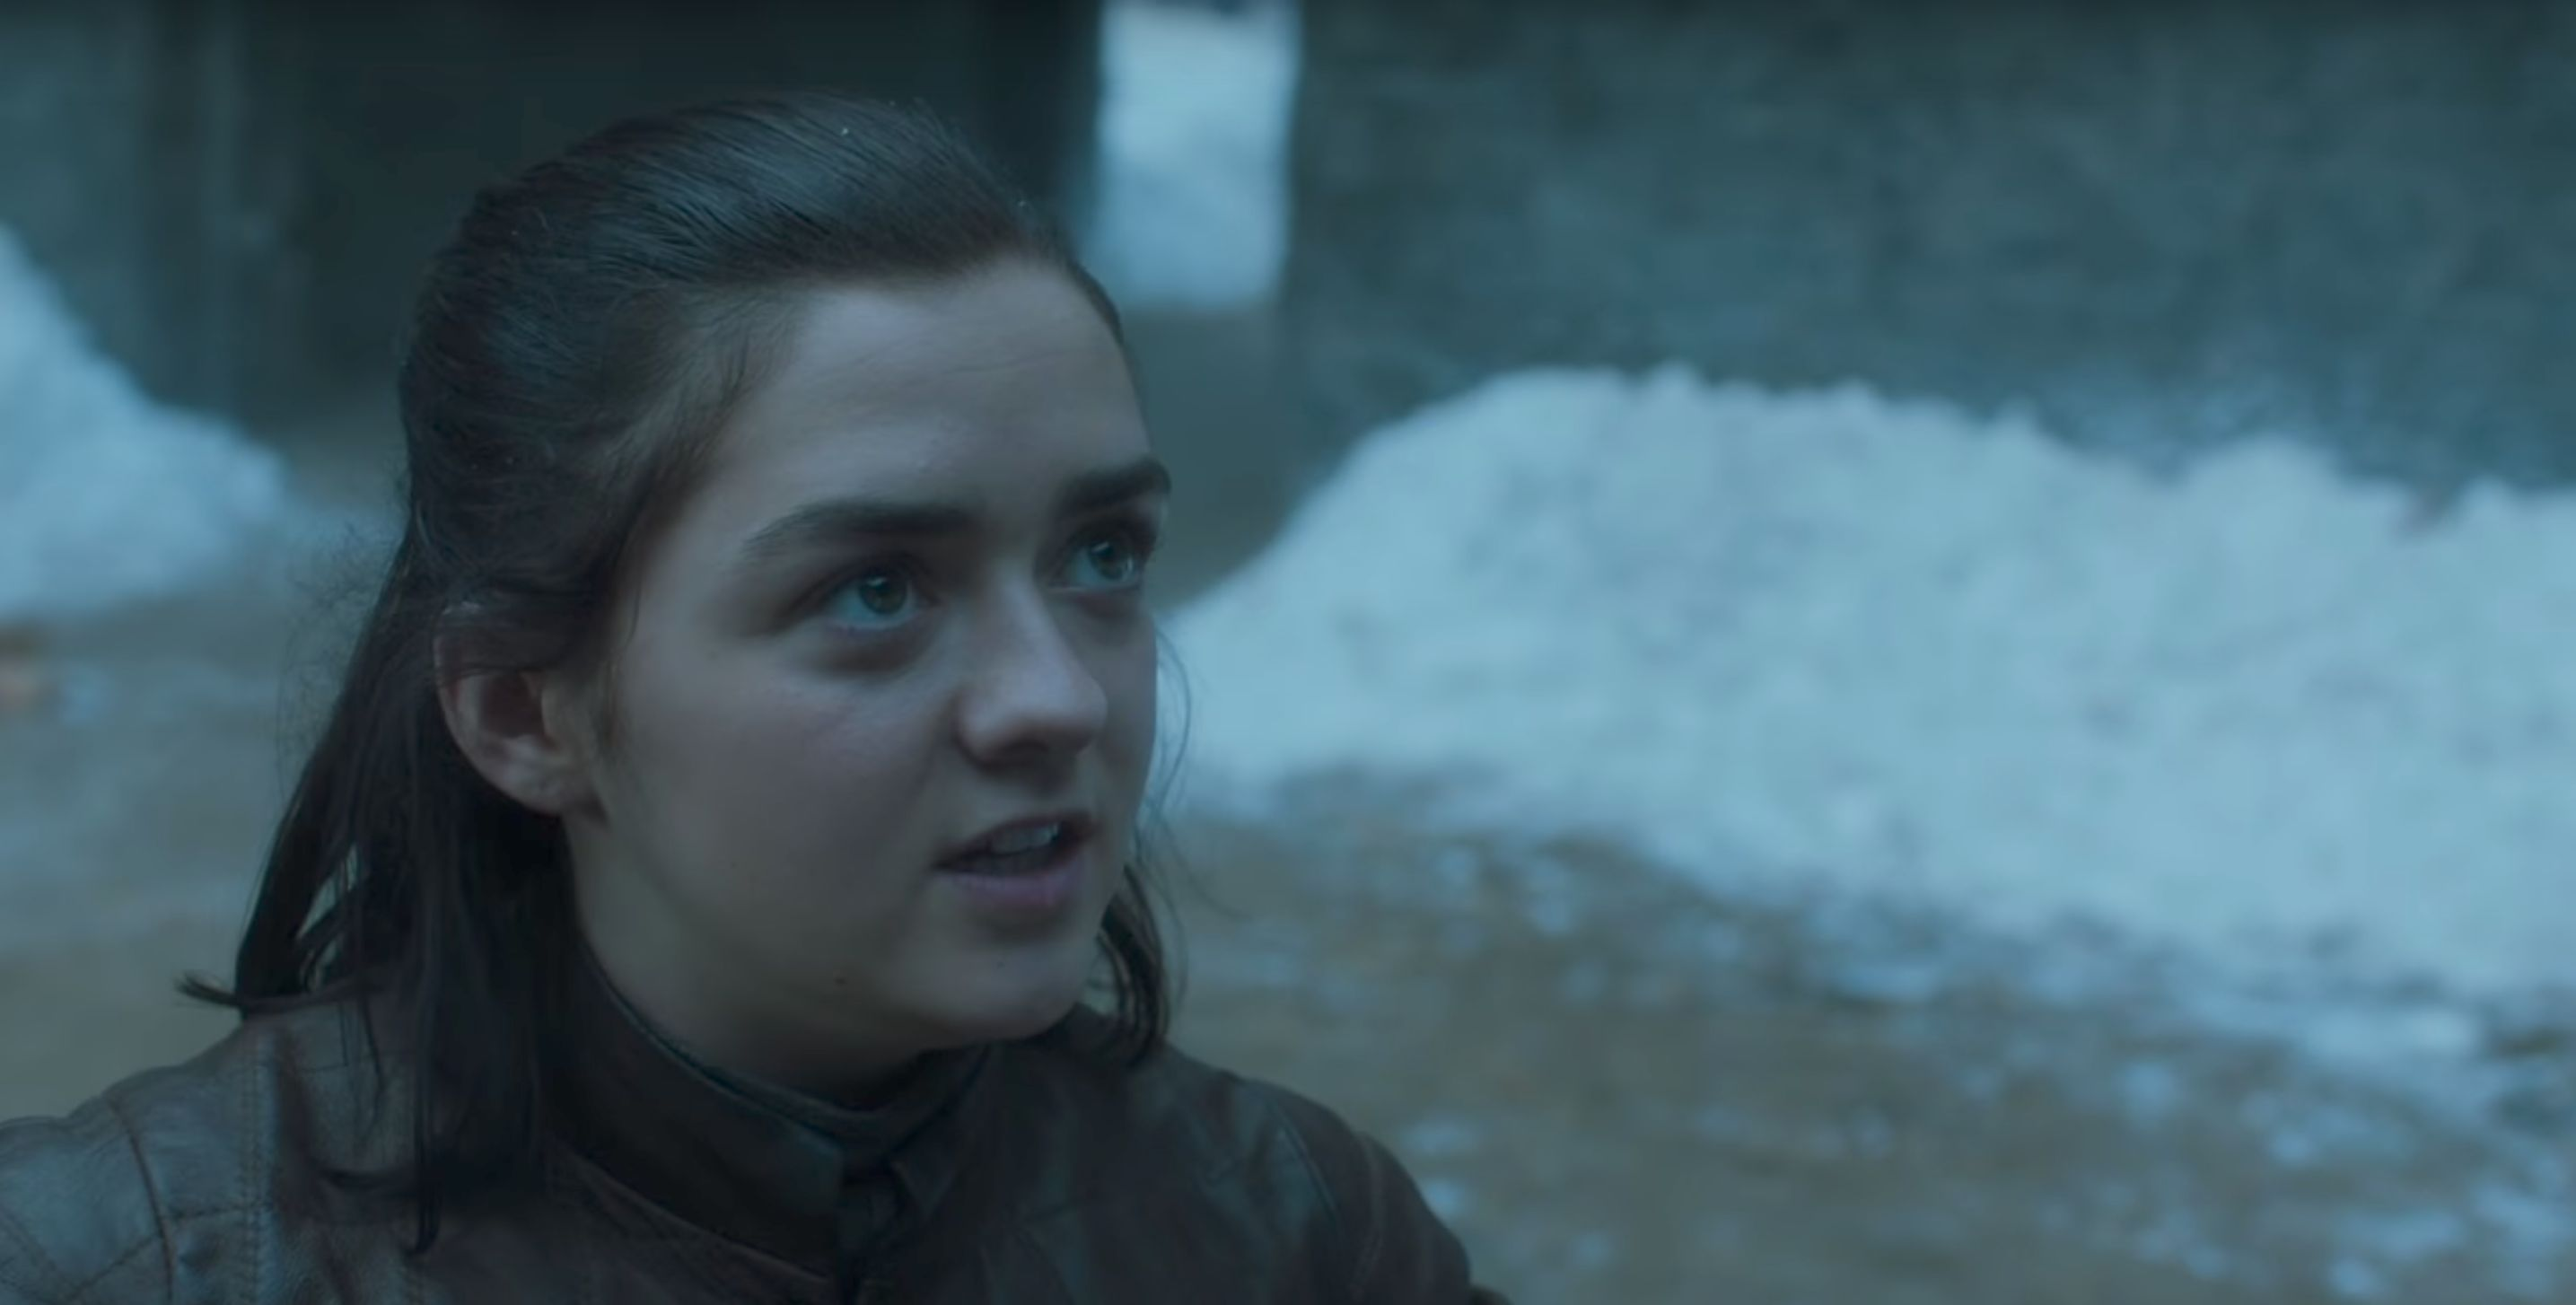 Fans Spotted Something Creepy As Hell In A Scene From 'Game Of